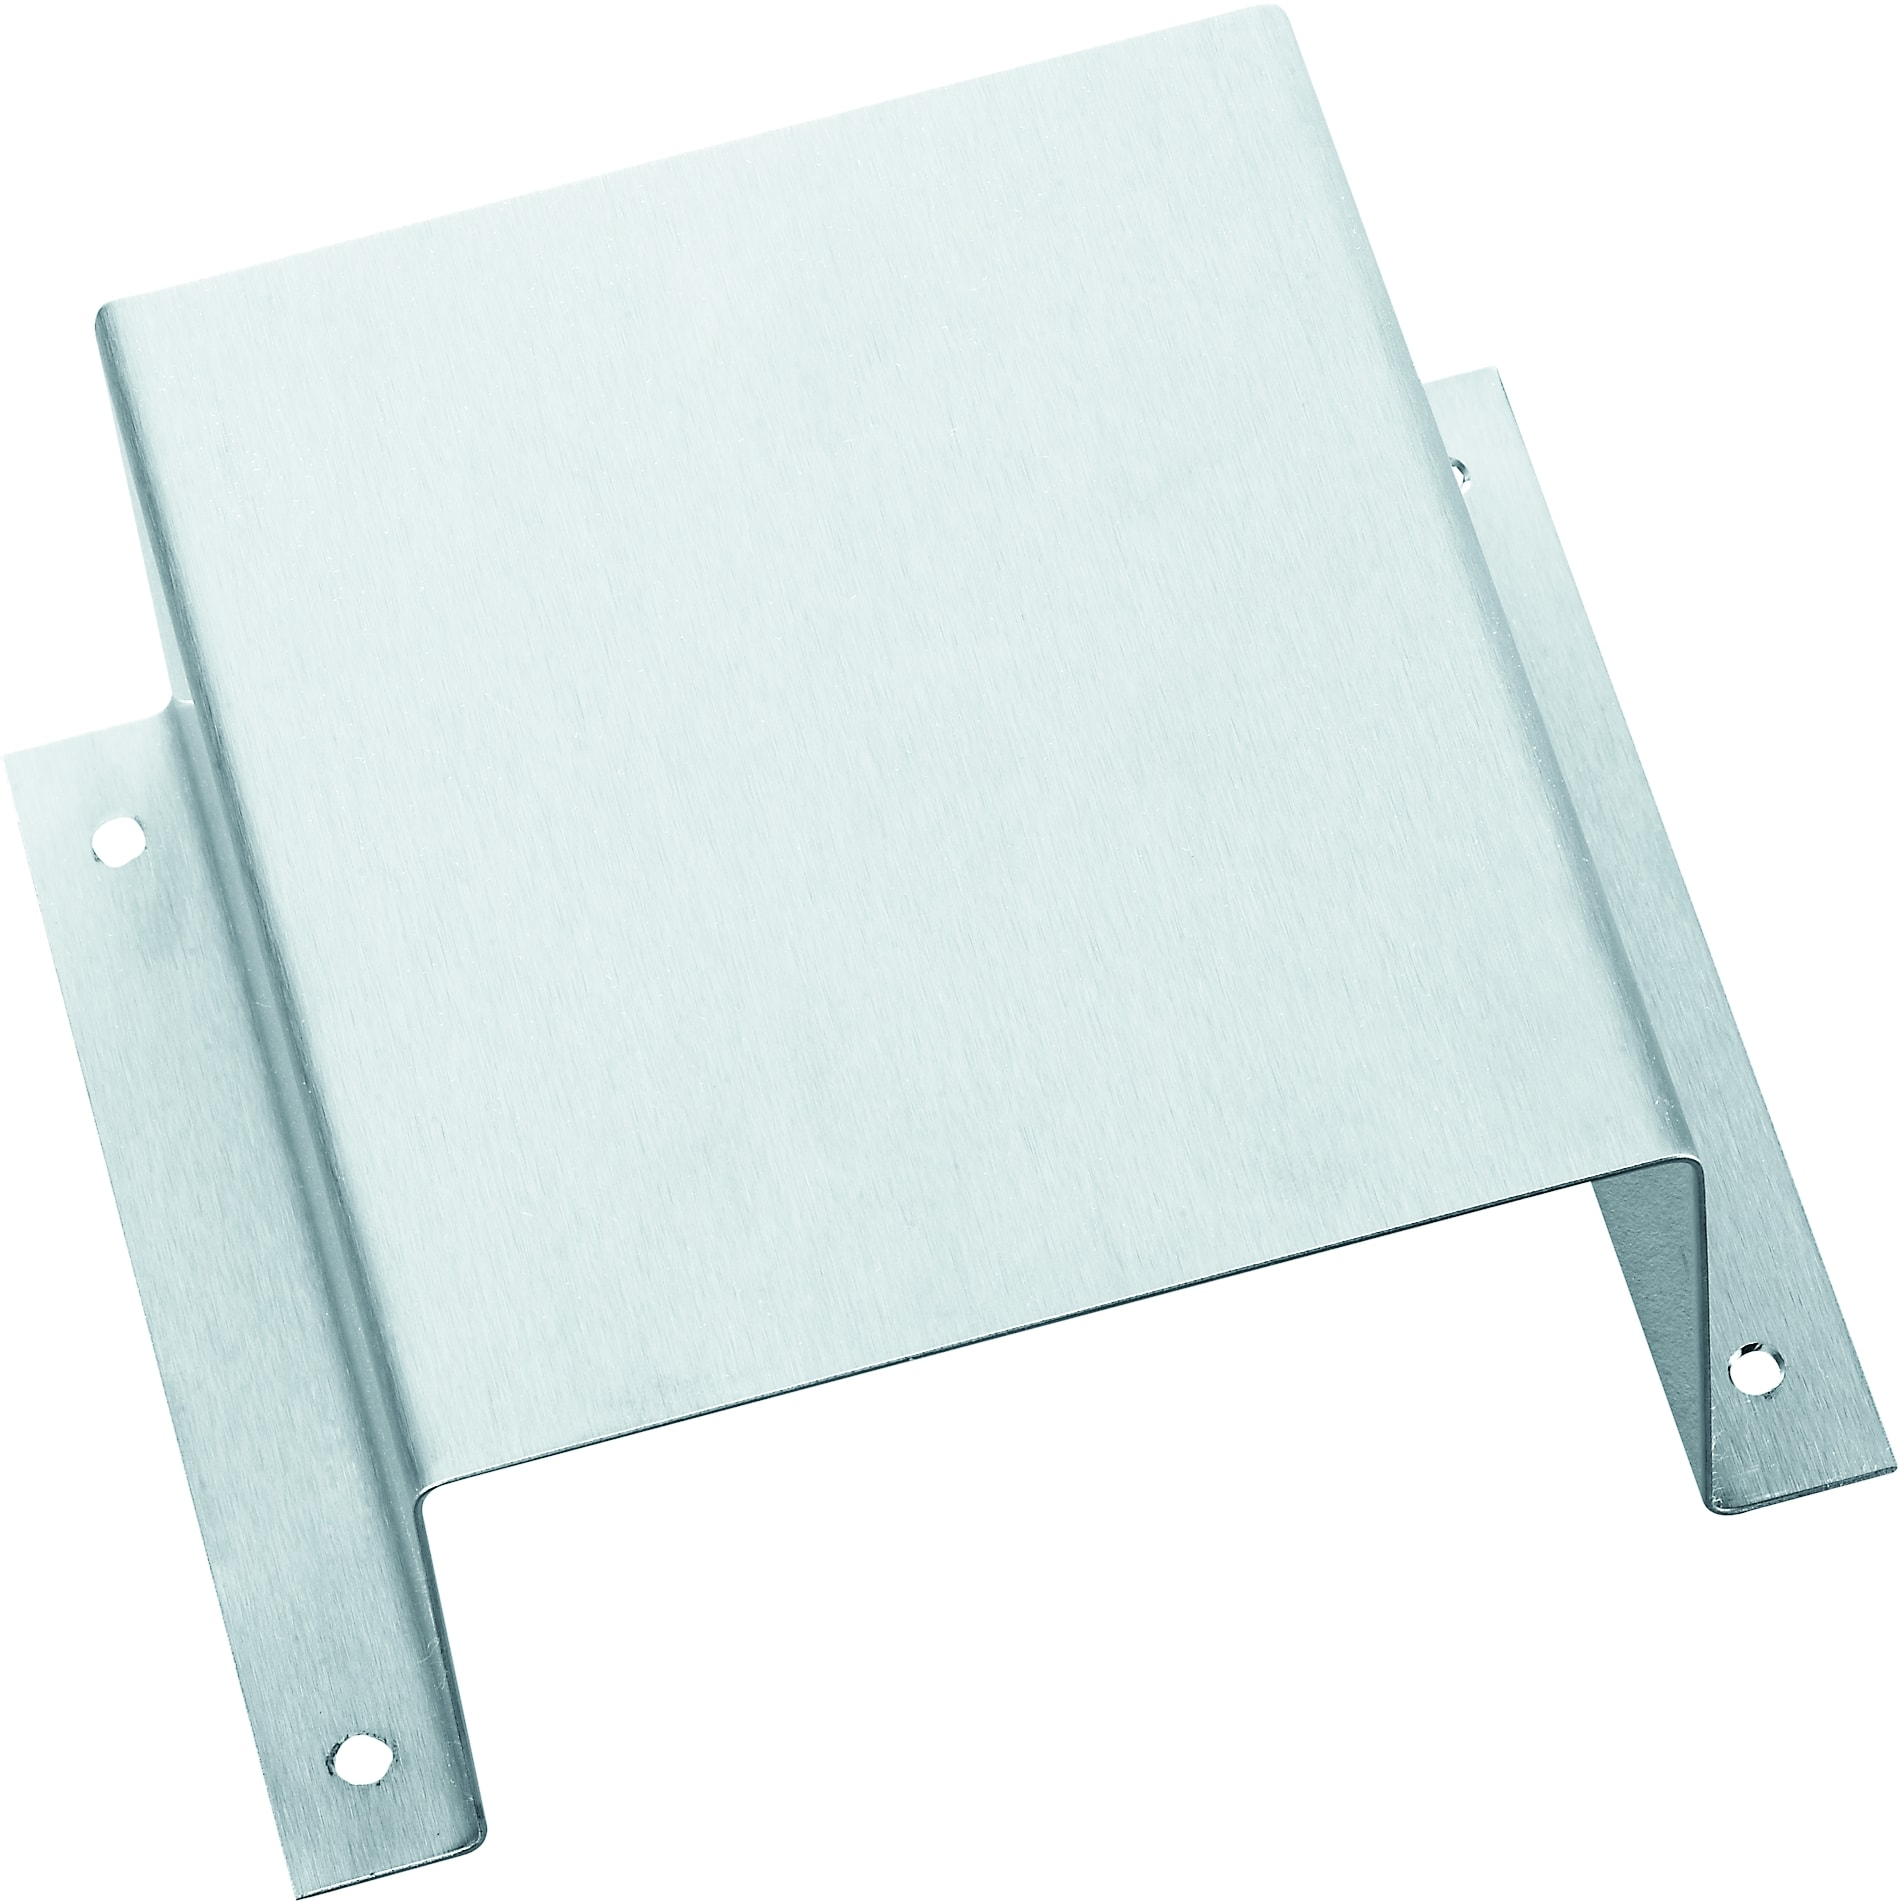 Protection solaire en inox, dimensions : 184x180x150 mm